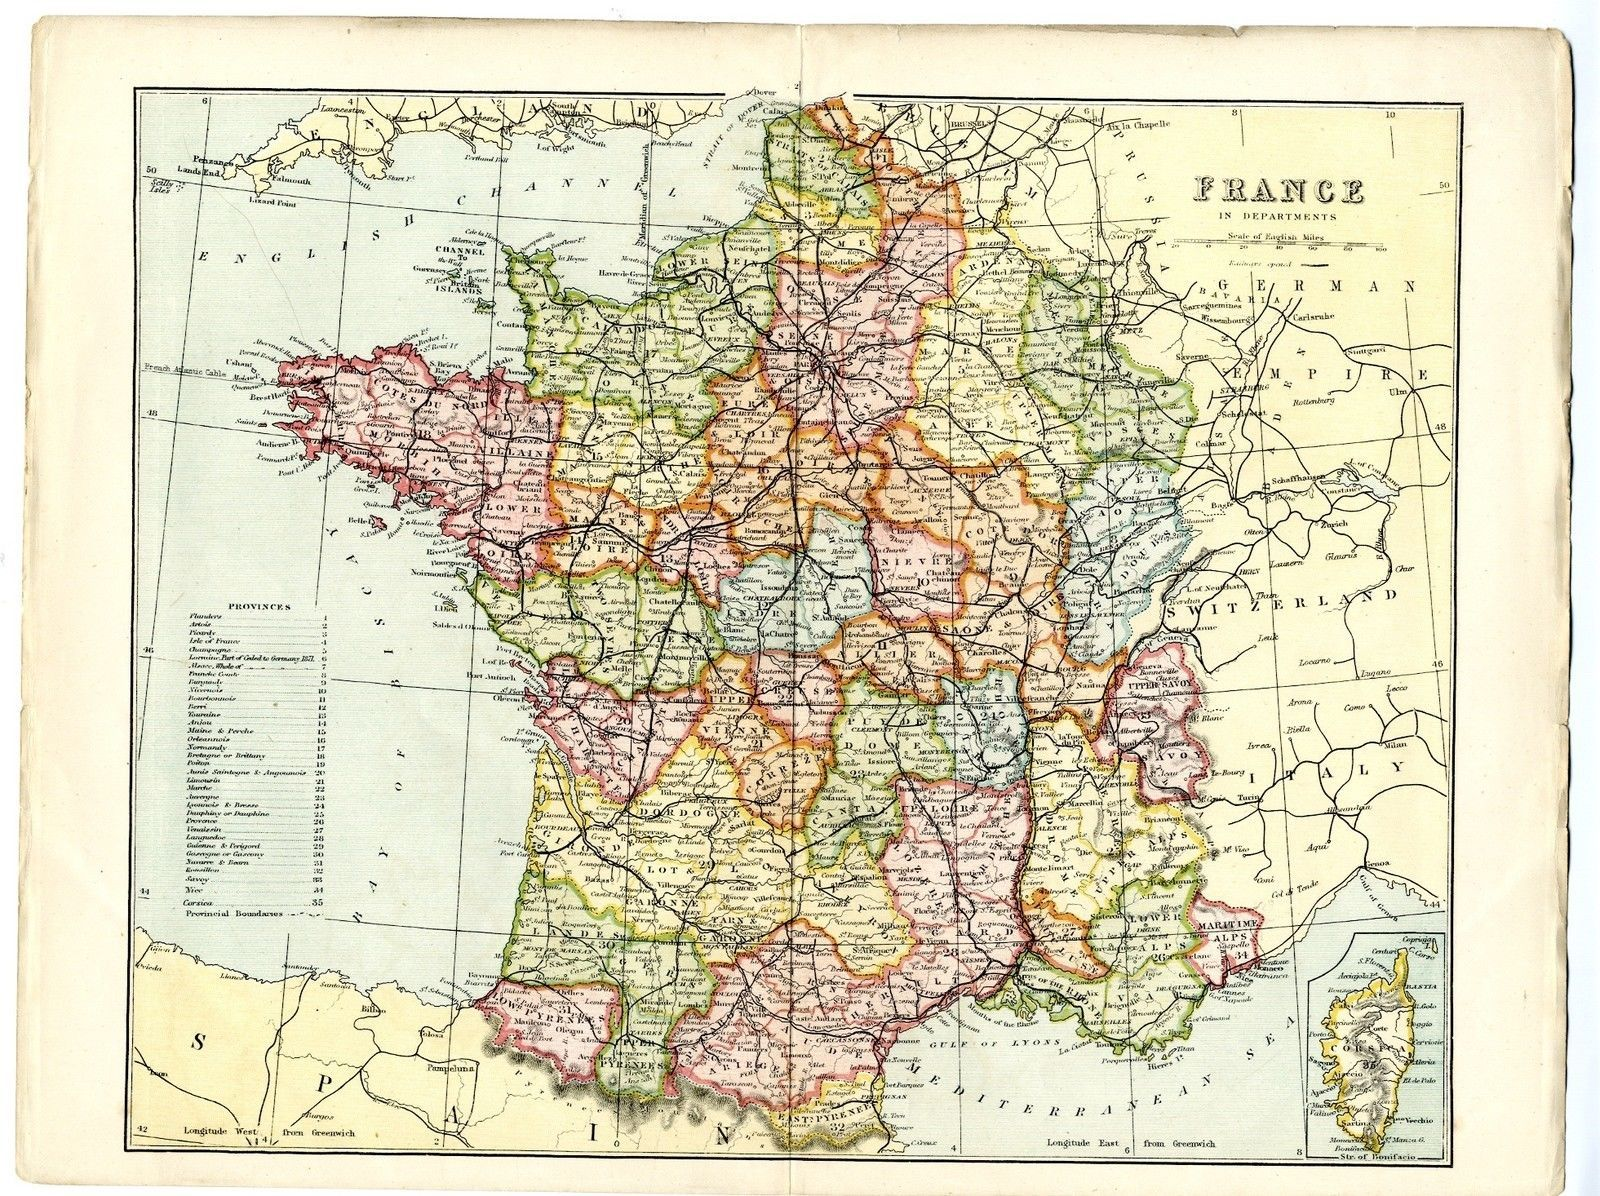 Map Of France And Corsica.1868 Antique Map France Corsica Provinces Departments Victorian Francais